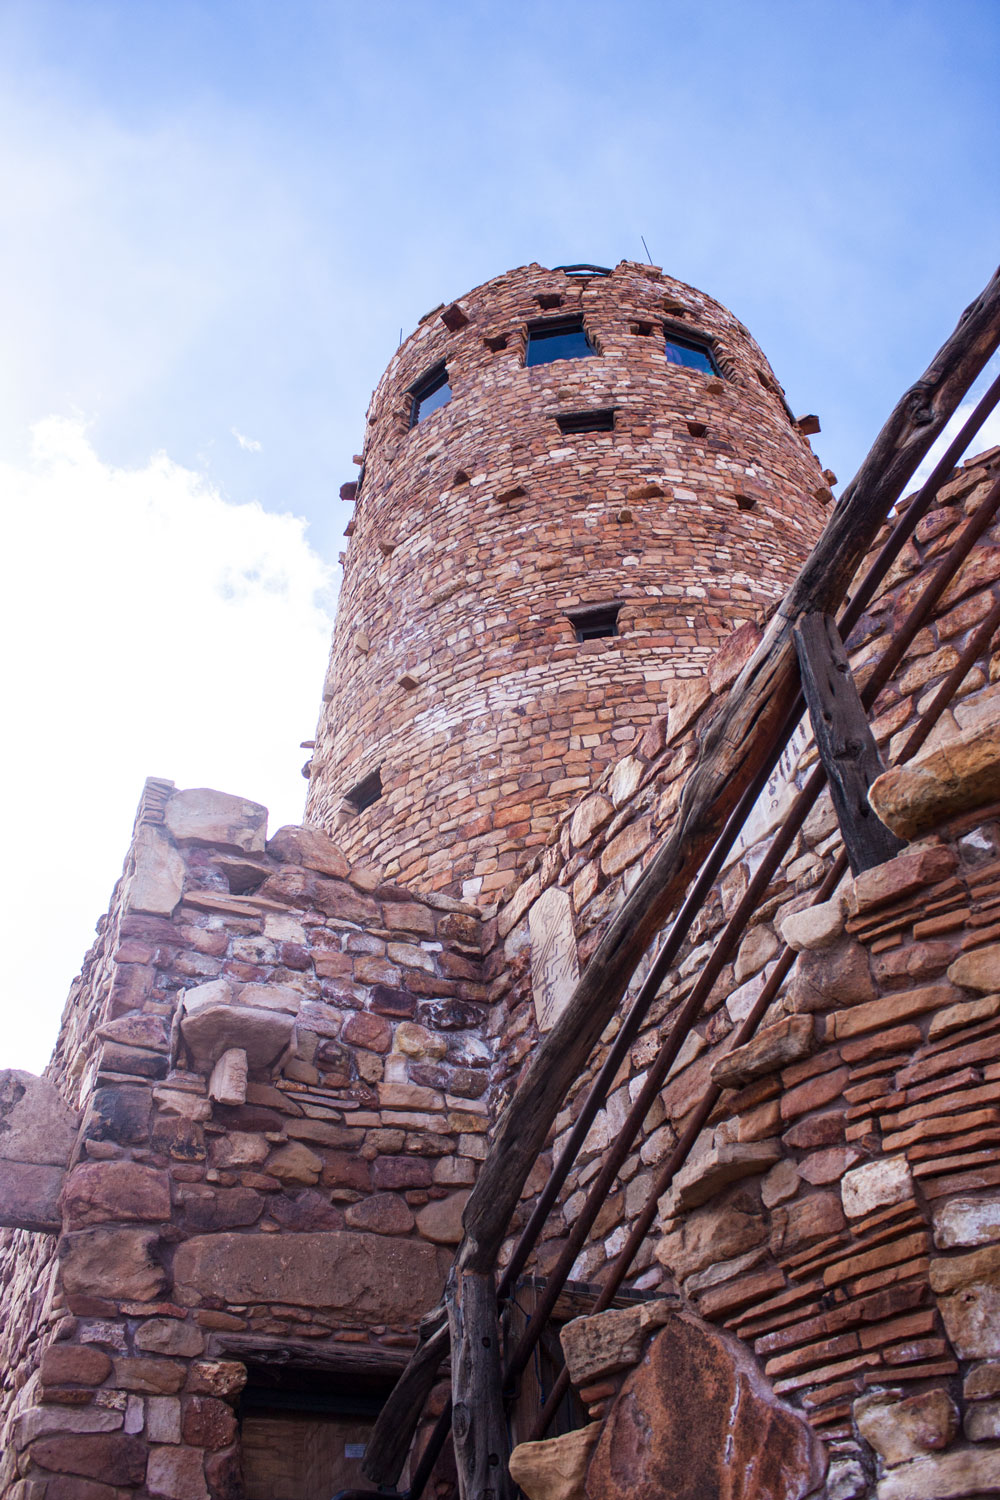 The Desert View Watchtower was a favorite with its spiral staircases and stunning views.